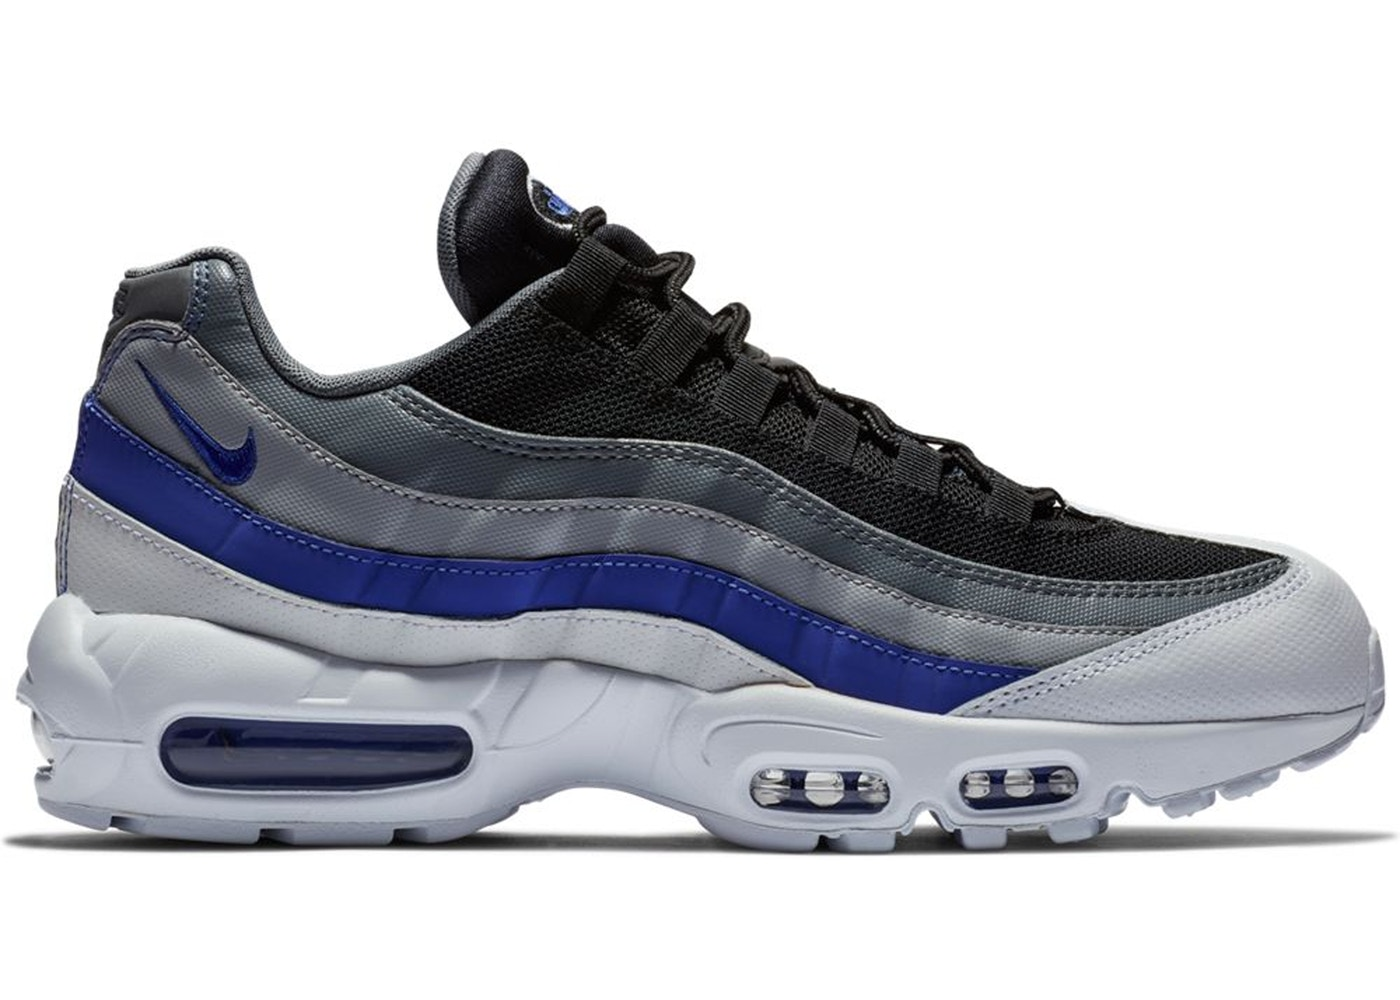 new product c4b1c acf6f Air Max 95 Wolf Grey Persian Violet - 749766-110